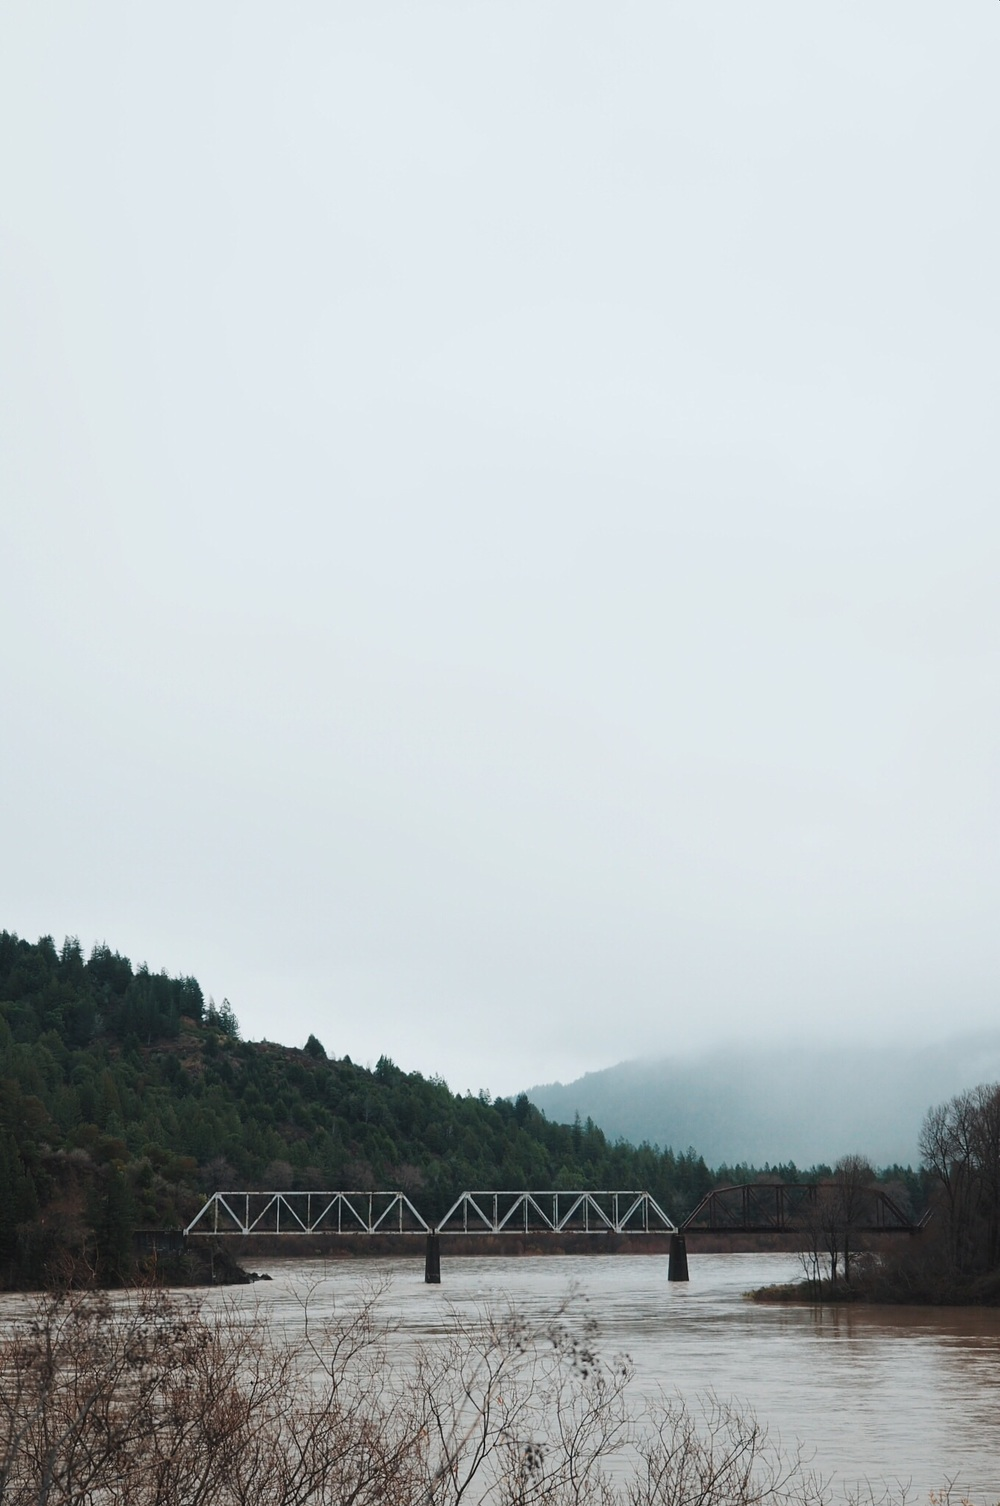 Train trestle over the Eel River